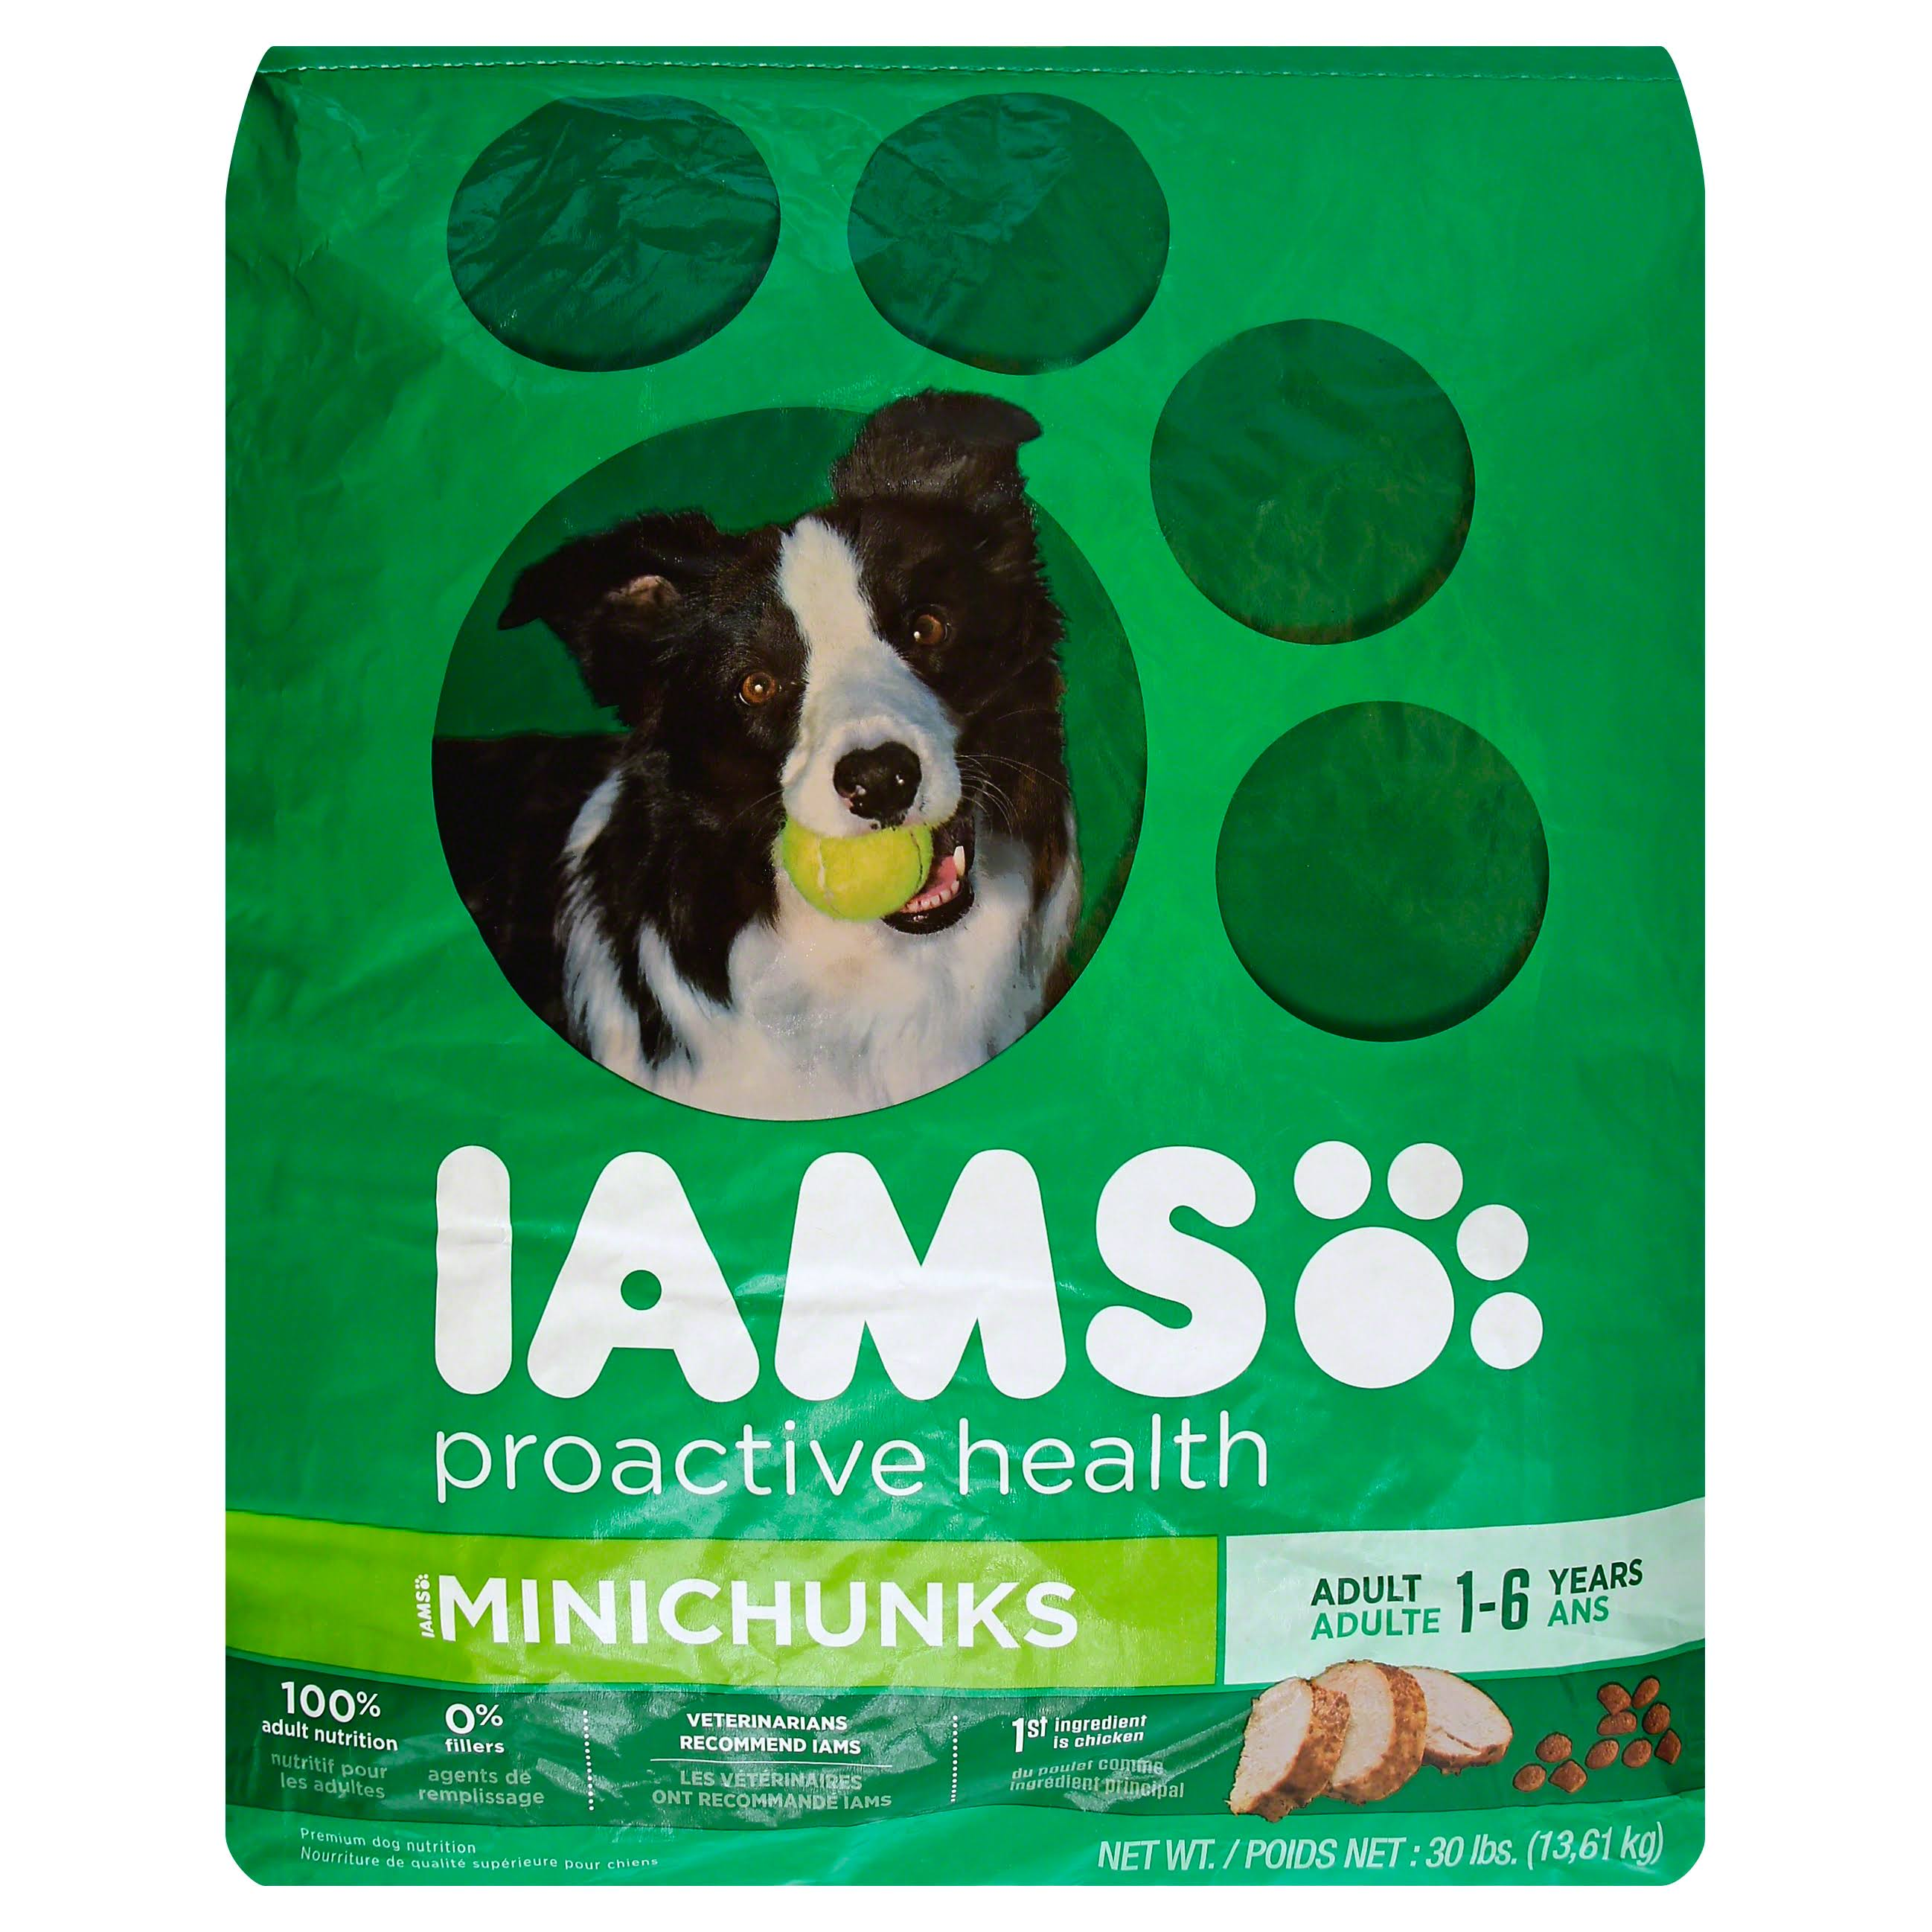 Iams Proactive Health Adult Minichunks Premium Dry Dog Food - 30lbs